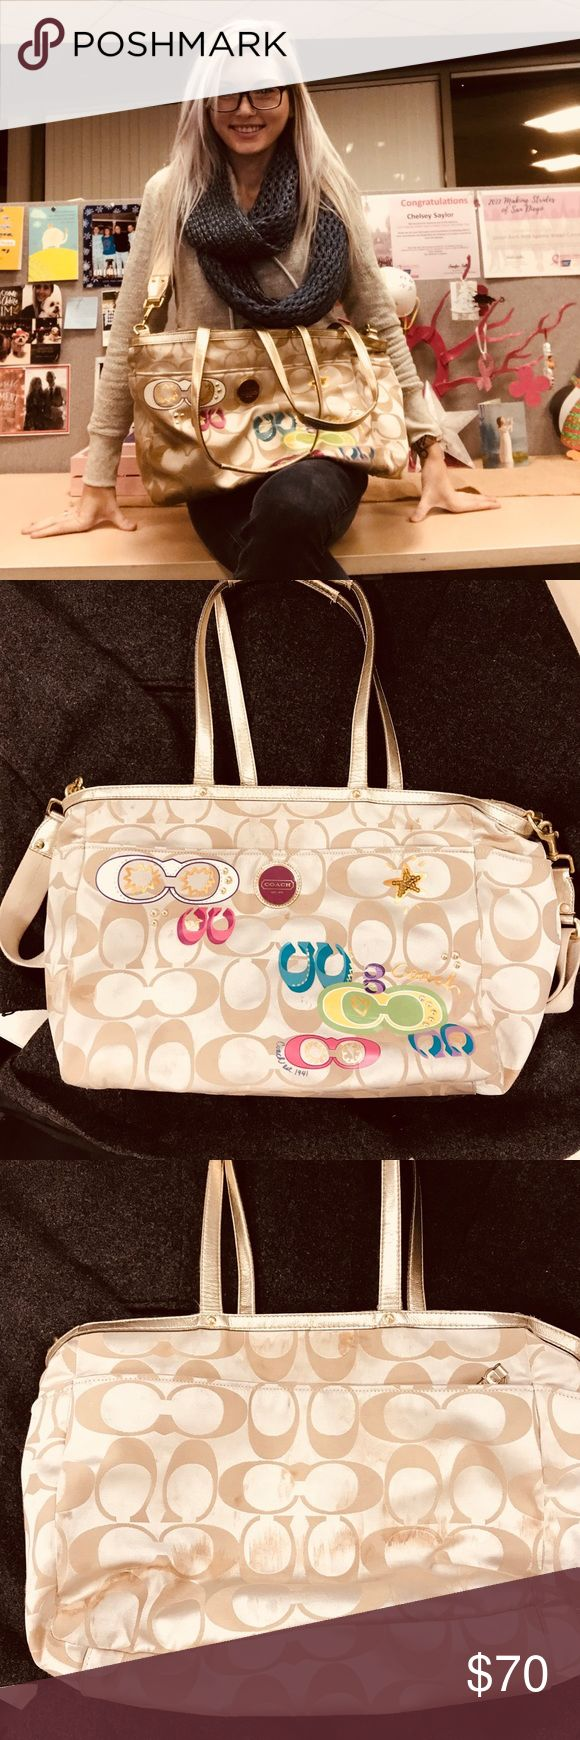 XL COACH Crossbody Travel Bag XL COACH Crossbody Travel Bag This is from their Poppy Collection  There are some stains on the bottom of the bag, but they can easily be washed out. No serious damage to the purse.  Perfect for traveling, baby diaper bag, school, work, or those weekend get aways! This tote needs a loving home!! Coach Bags Travel Bags